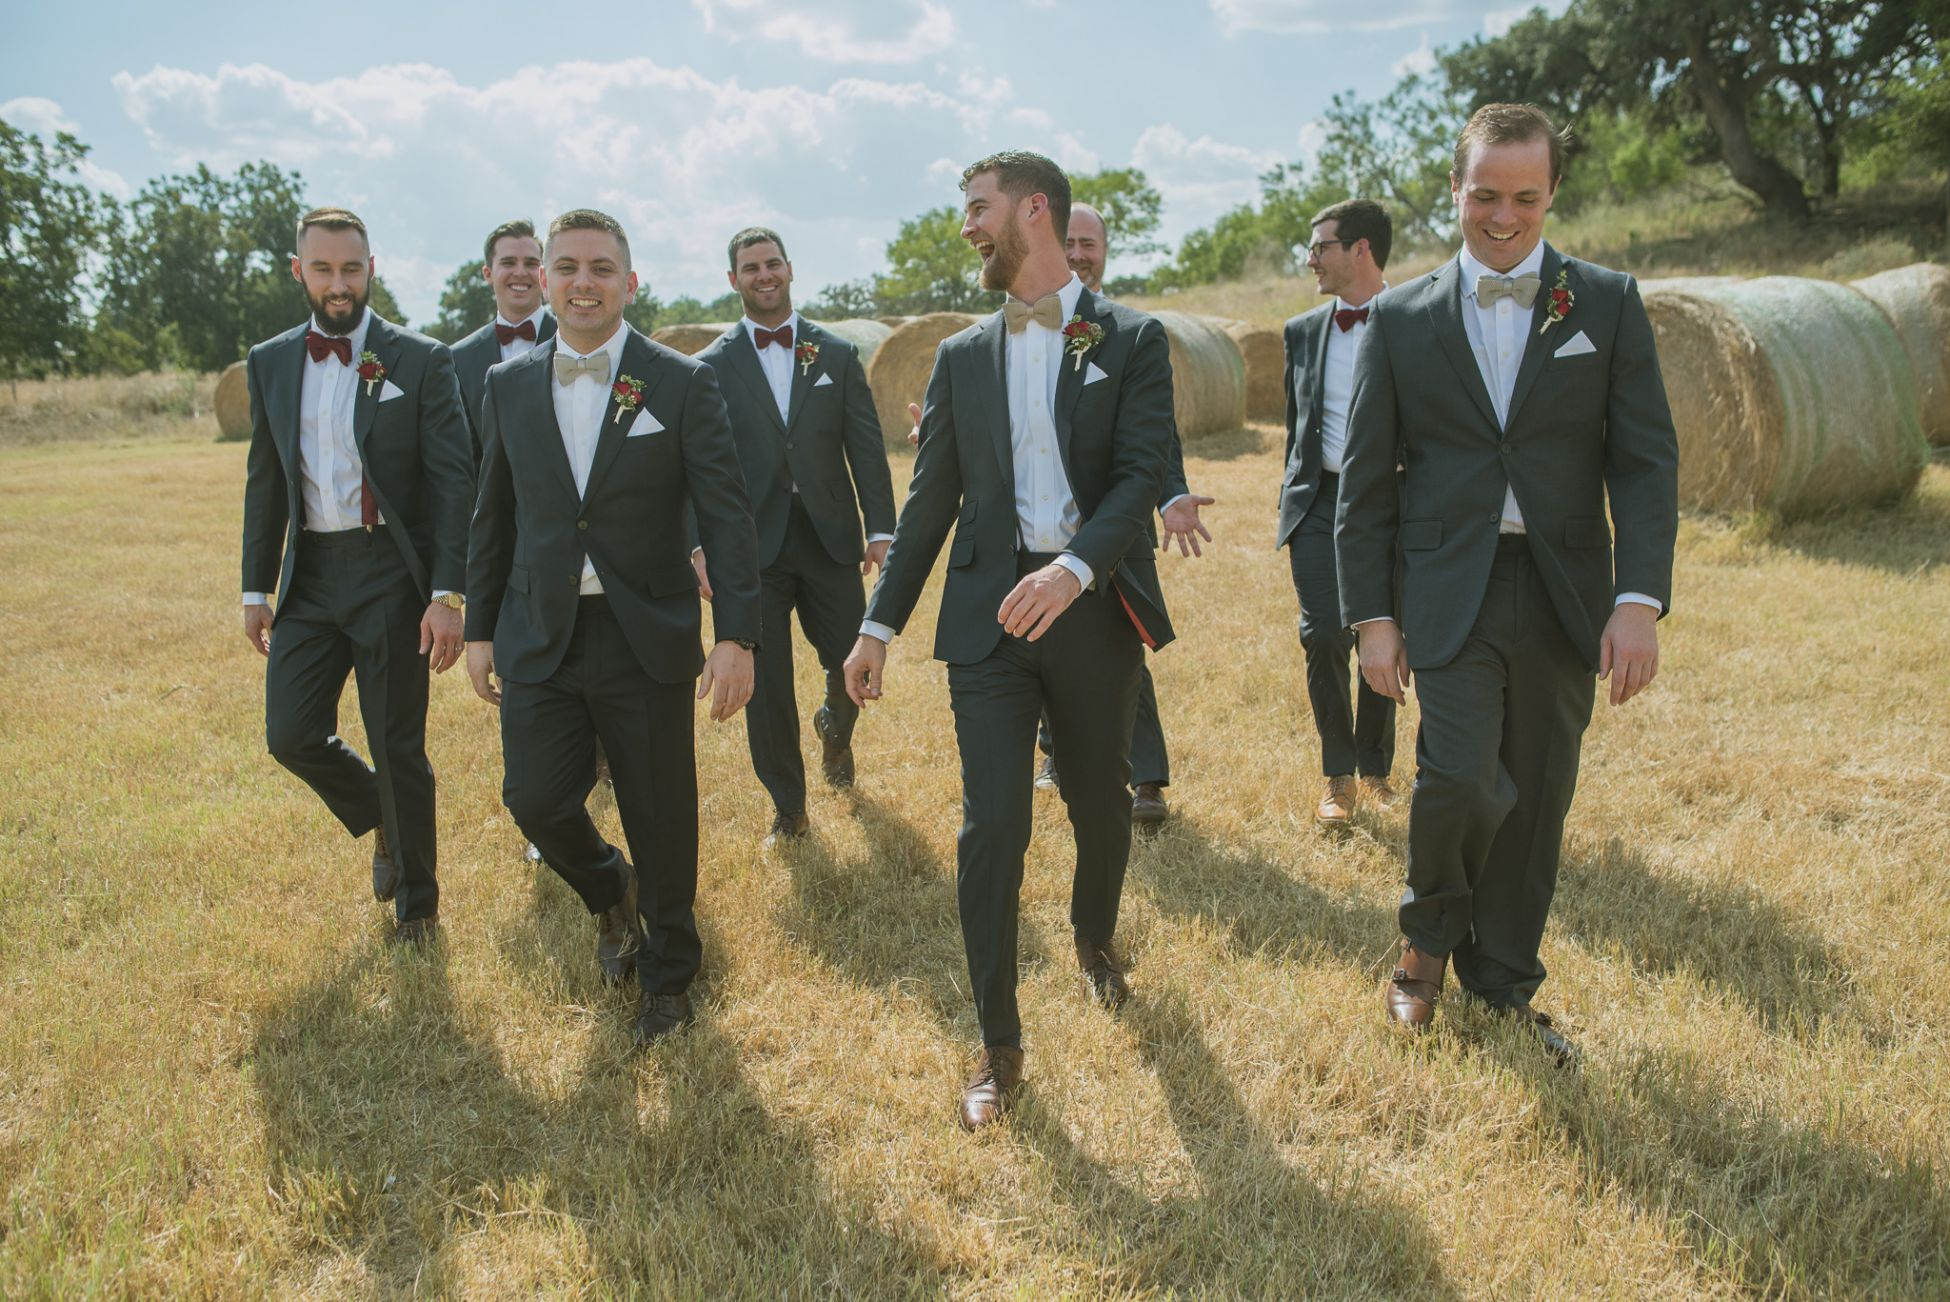 Best 2015 Wedding Photography Austin-12